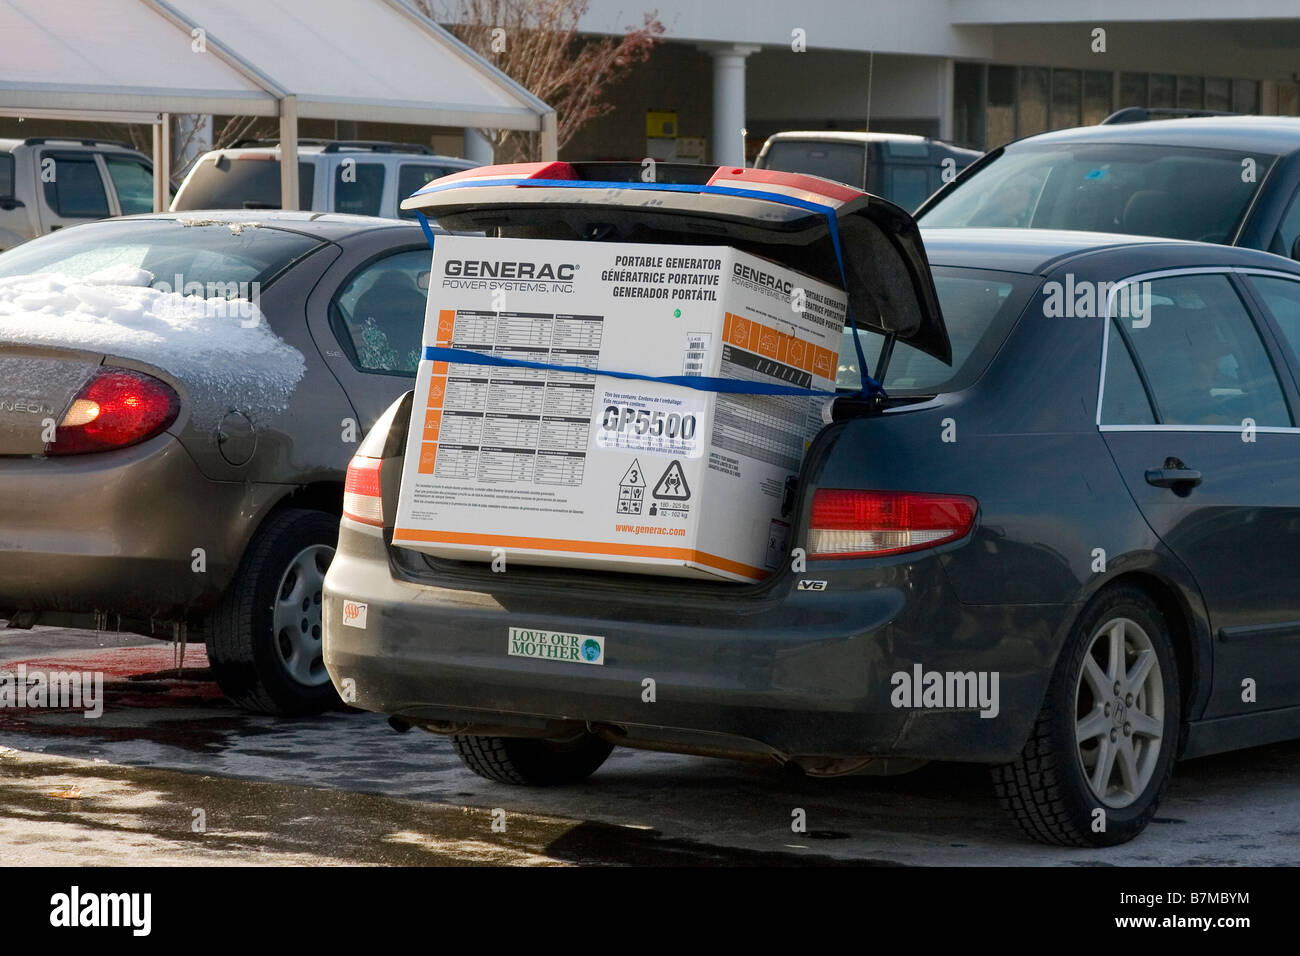 Emergency power generator loaded in the back of a car after an ice storm. - Stock Image